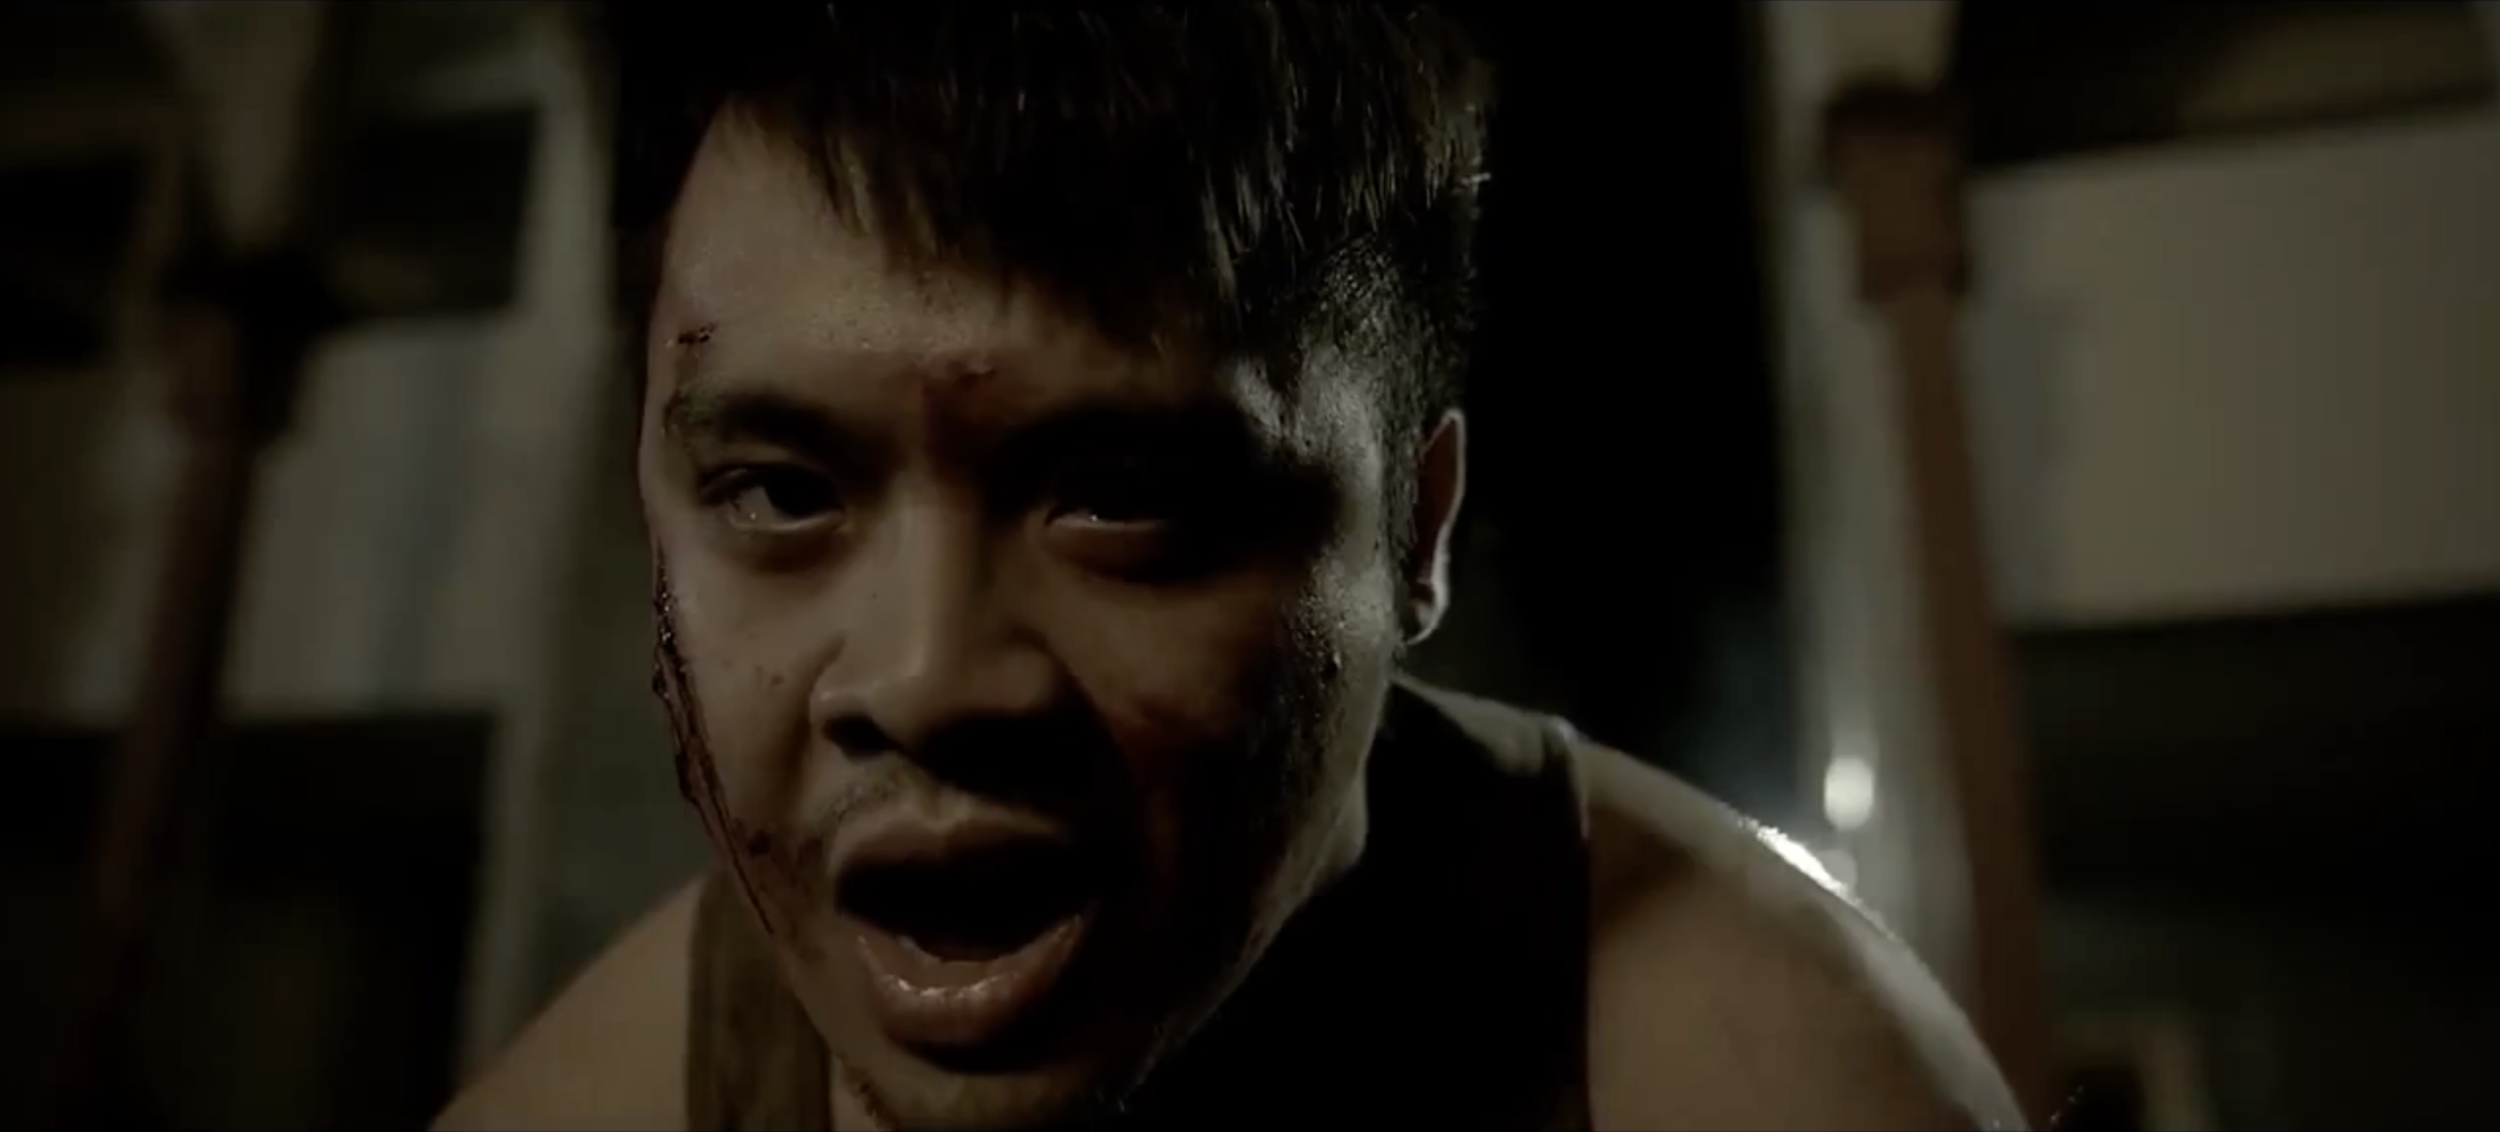 Chua Dick Woei / Malaysia / 2012 / Cantonese / 16min   A thriller short film that shows how a scriptwriter kills his protogonist.